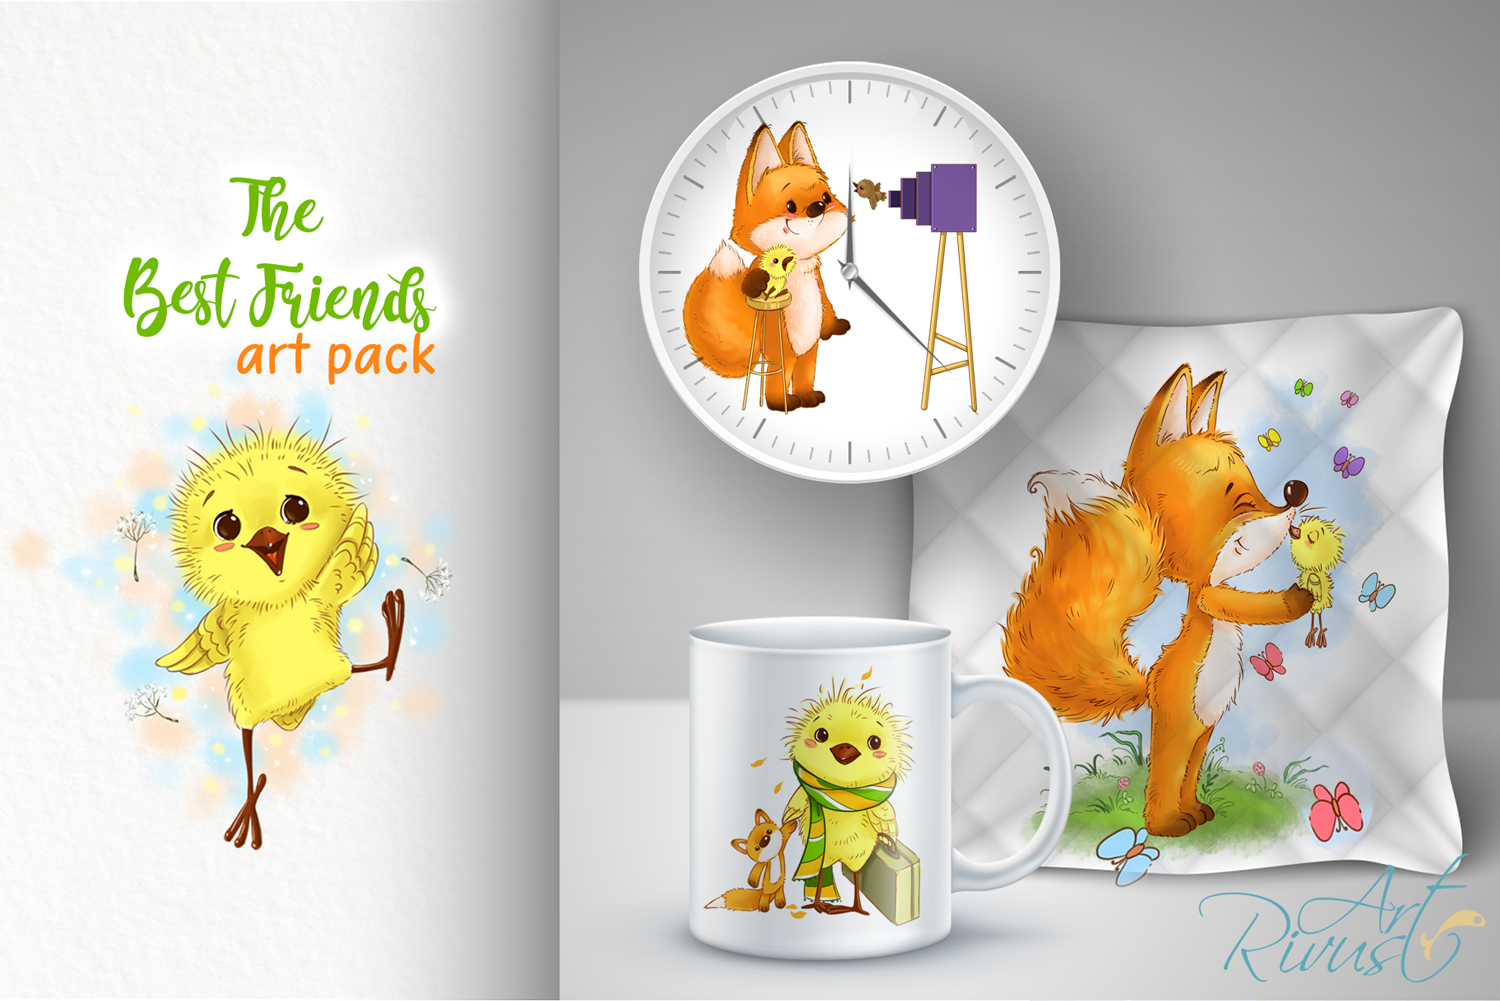 Fox and chick PNG clipart. The best friend graphic art. example image 7